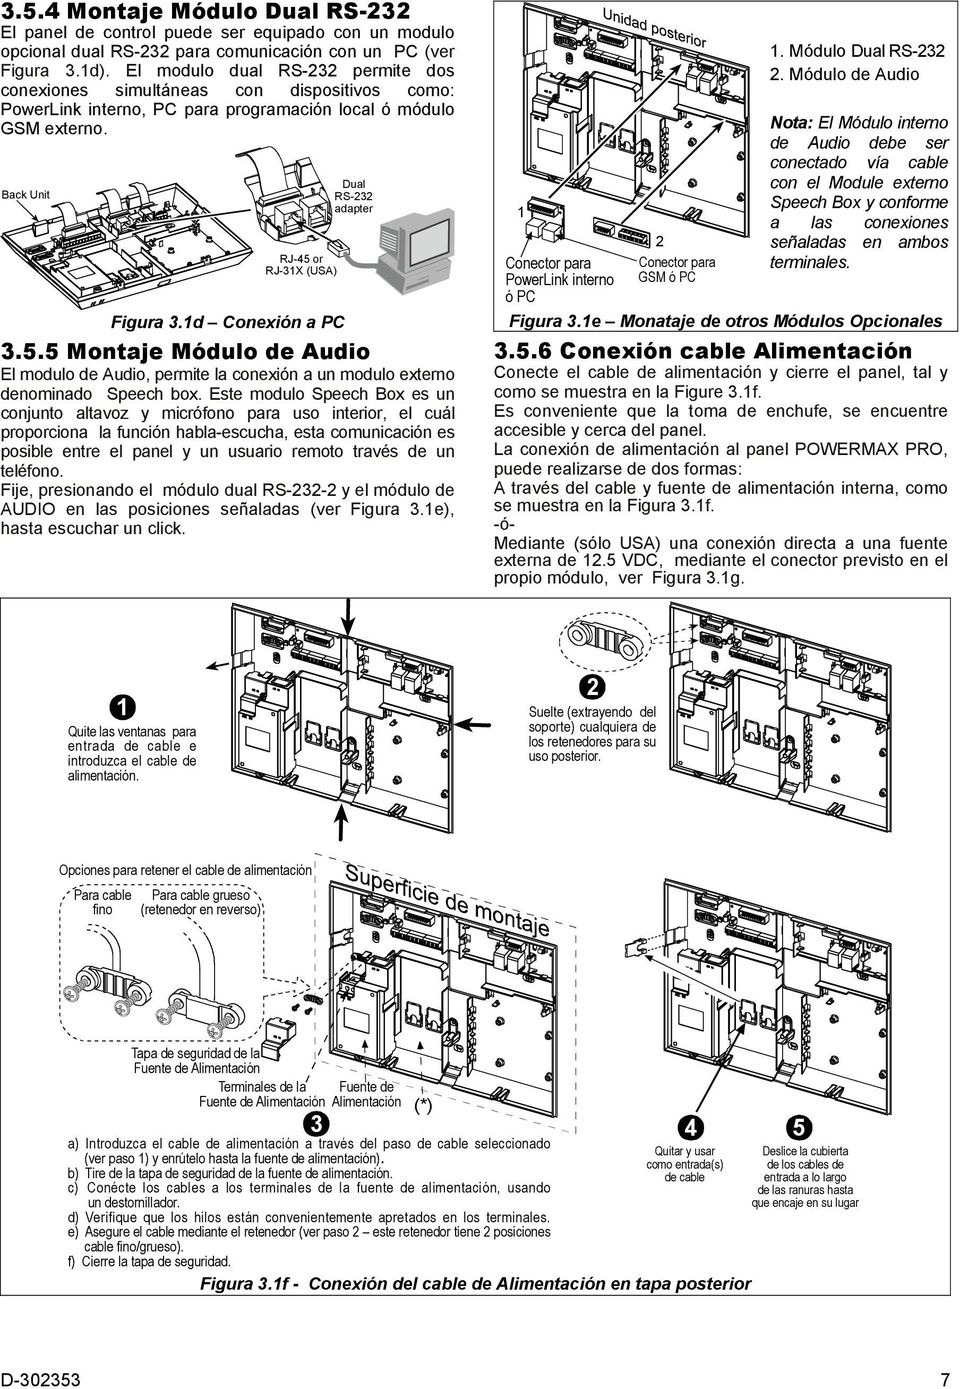 Back Unit RJ-45 or RJ-31X (USA) Dual RS-232 adapter Figura 3.1d Conexión a PC 3.5.5 Montaje Módulo de Audio El modulo de Audio, permite la conexión a un modulo externo denominado Speech box.